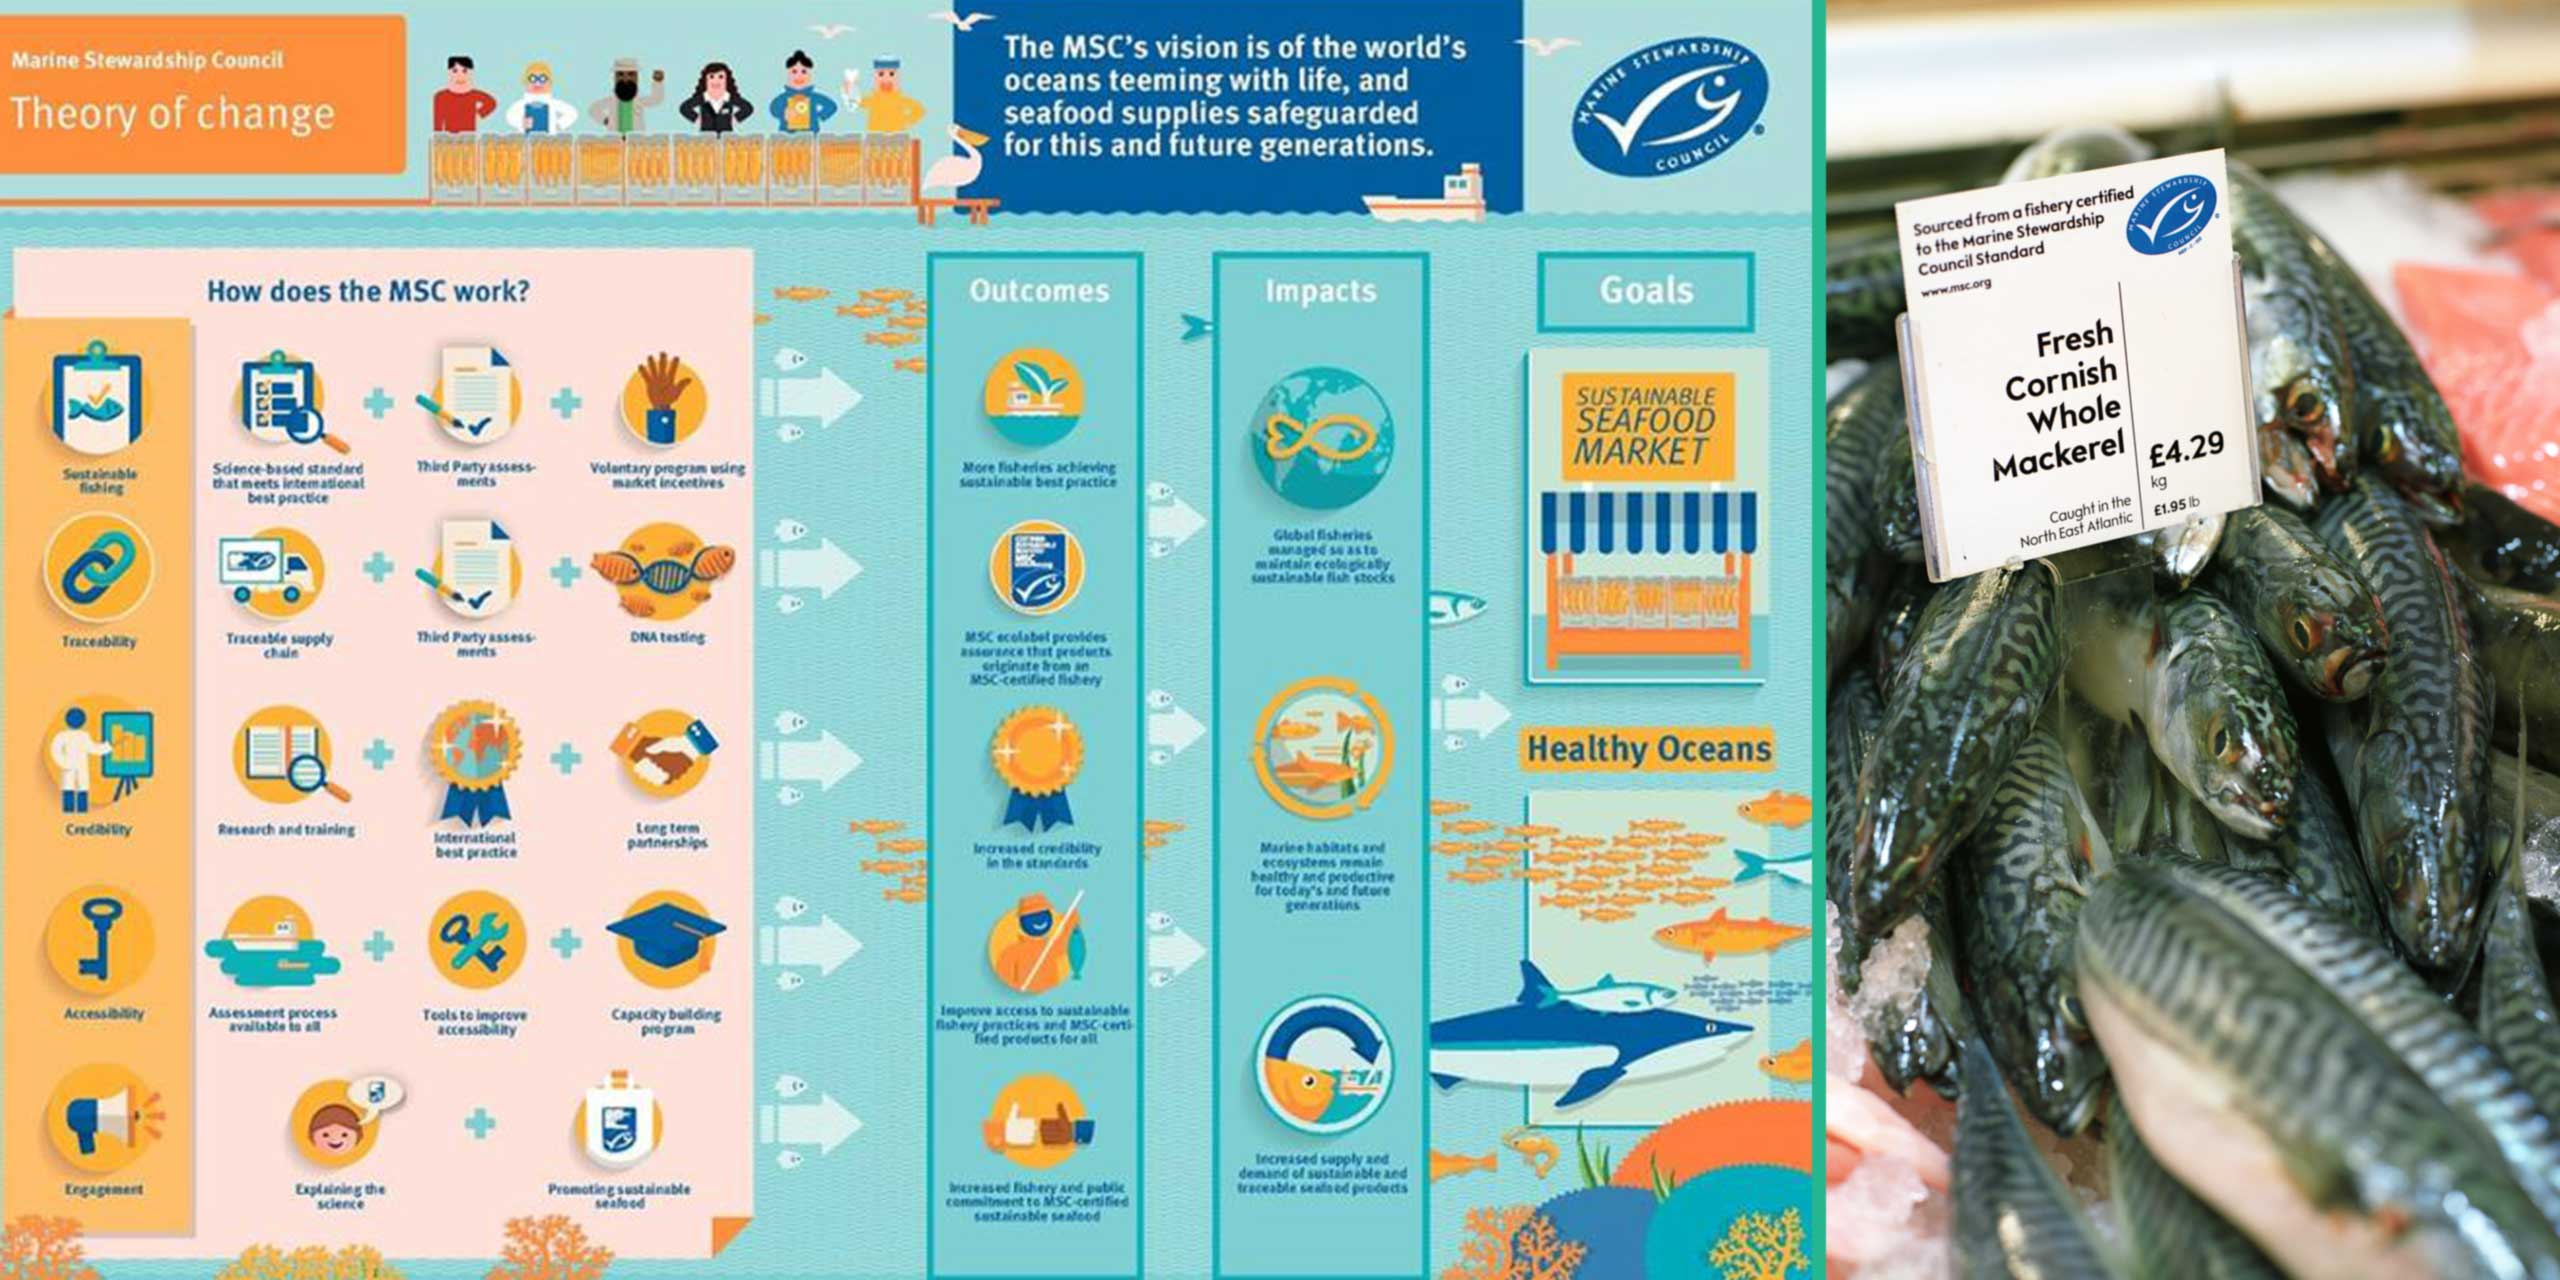 http://staging.skoll.org/wp-content/uploads/2014/02/marine-stewardship-council-sl2.jpg